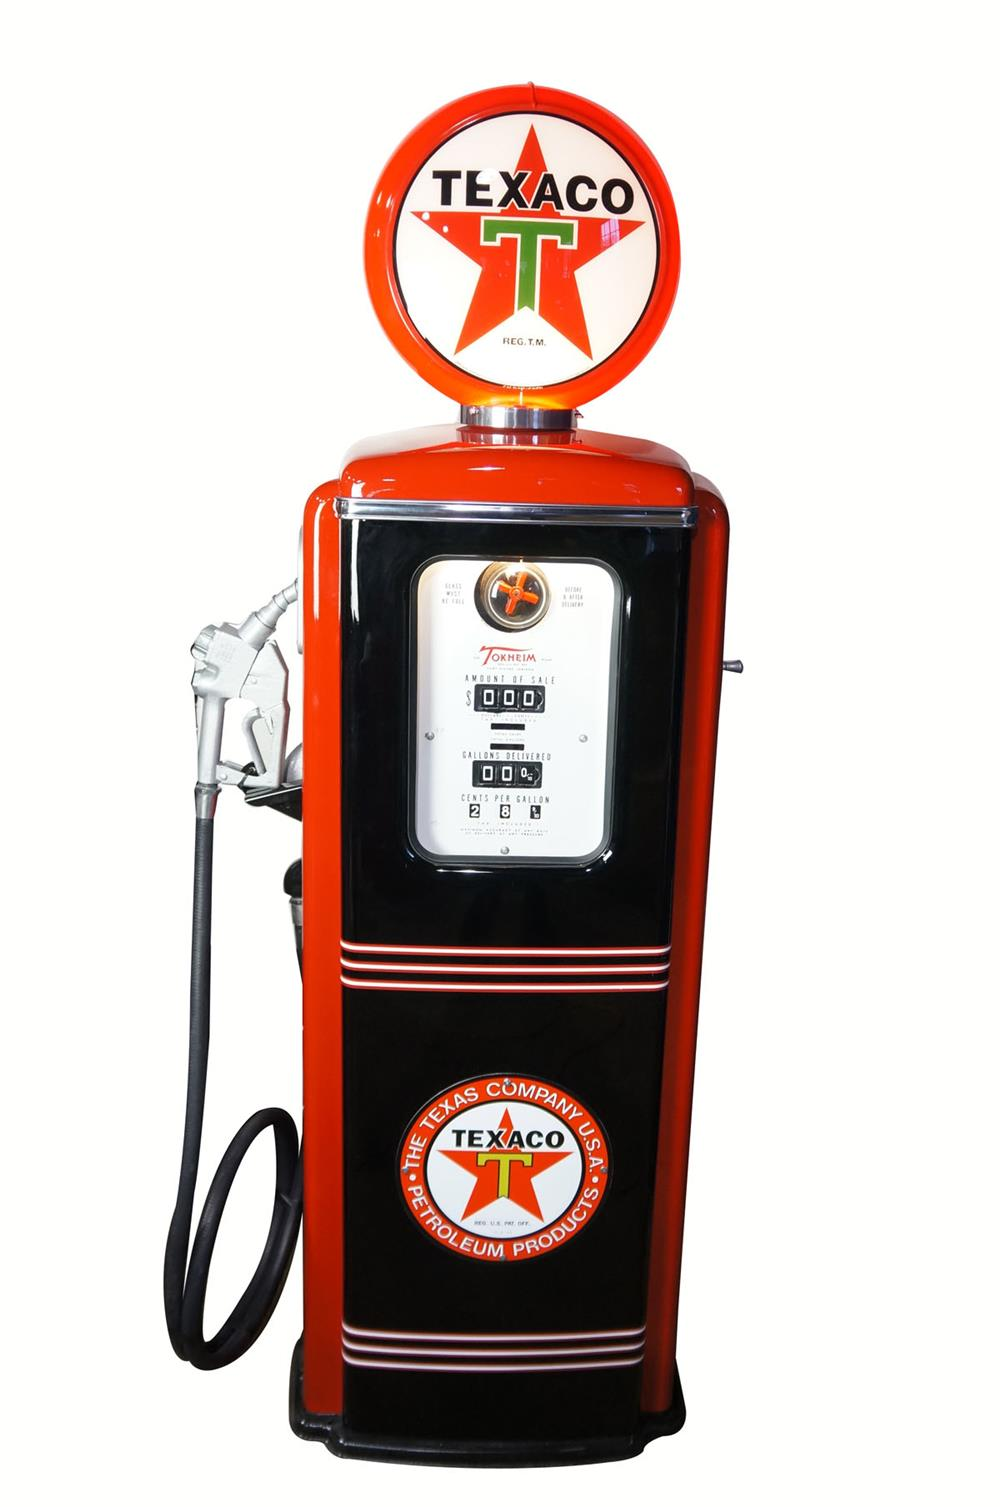 1950's Texaco Gasoline Tokheim model 39 restored service station gas pump. - Front 3/4 - 181927